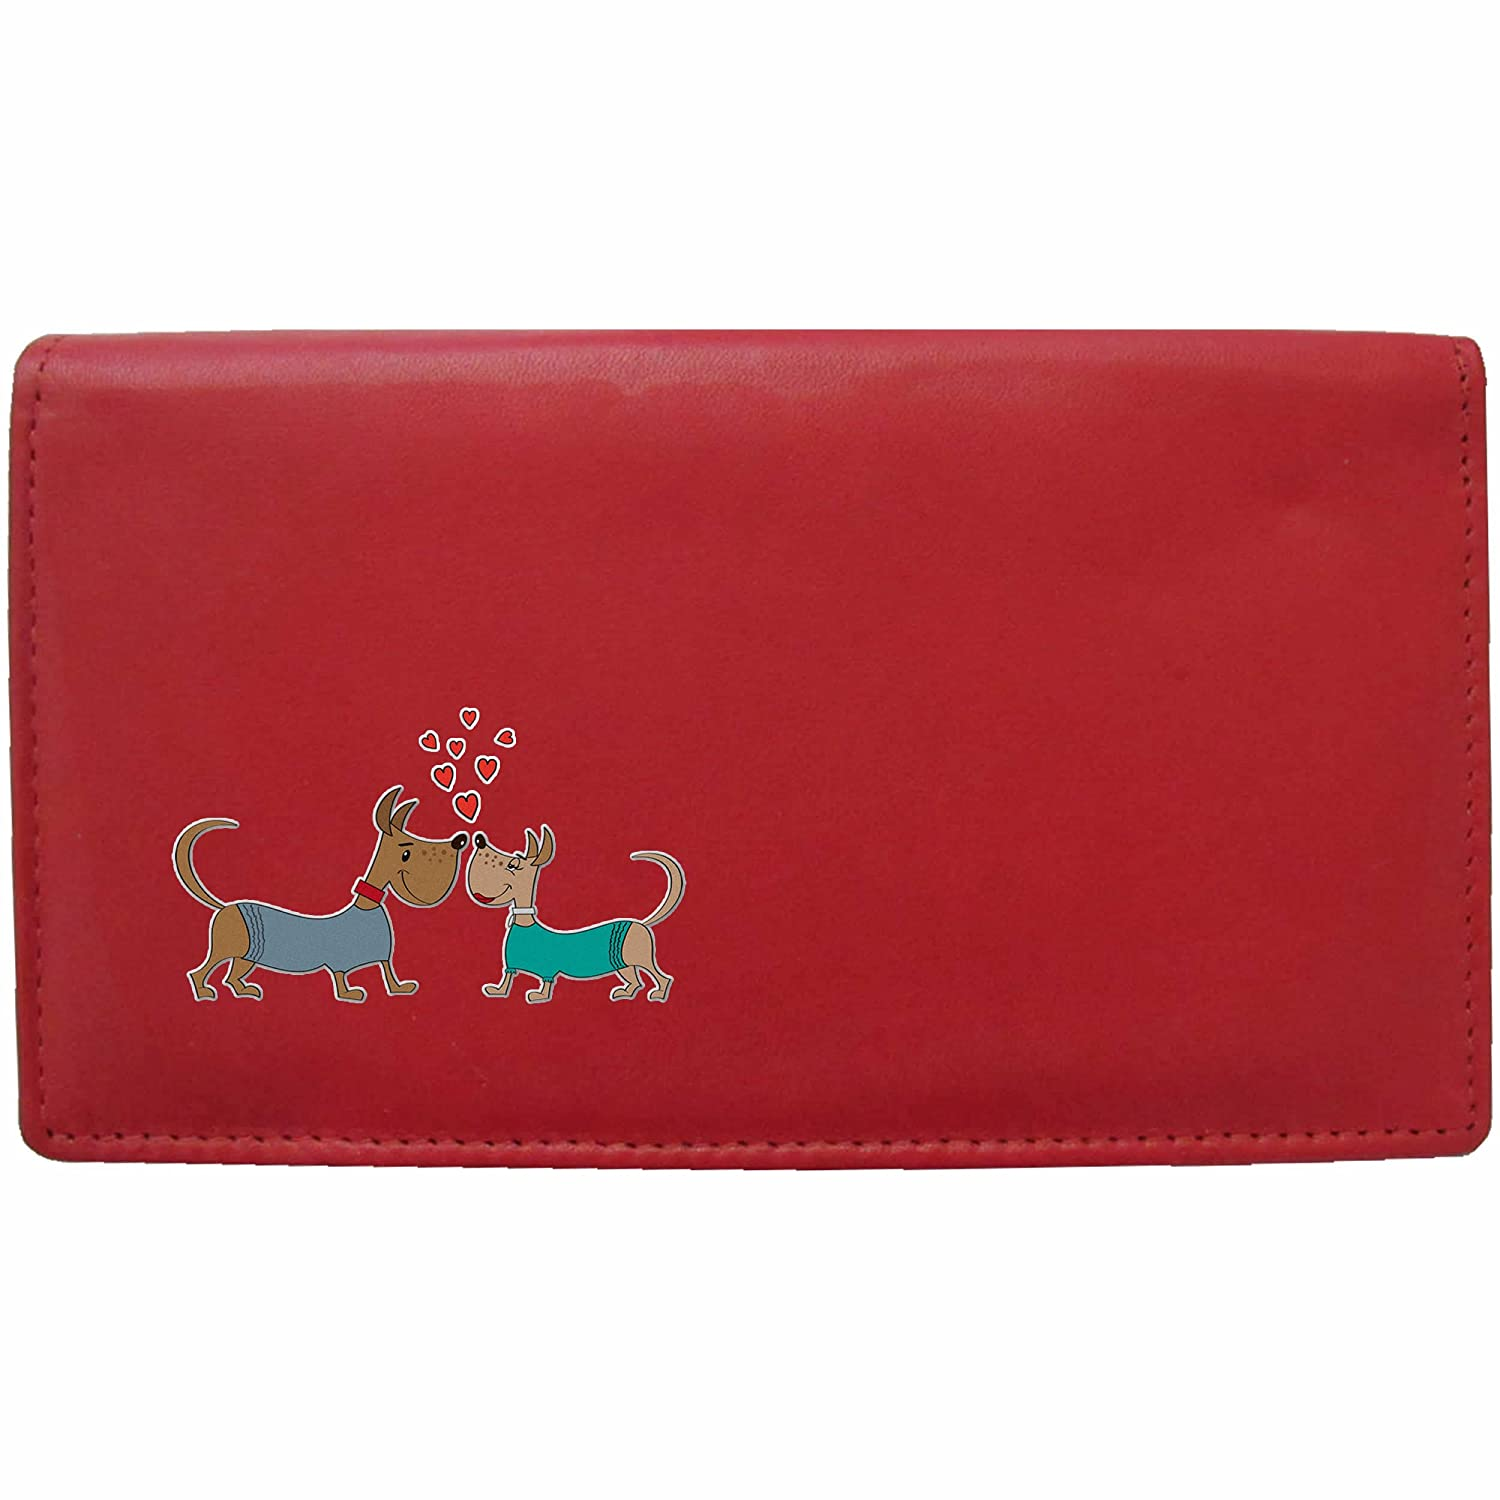 Love Dogs Klassek Real Leather Womans Purse Wallet small Dogs in love puppy Present Gift for her Wife Girlfriend (Black)